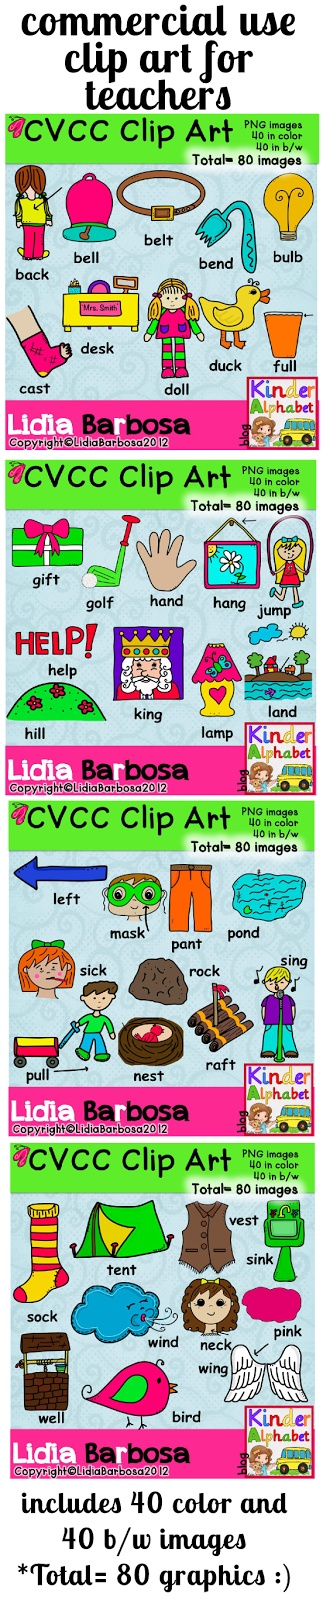 CVCC Clip Art for teachers. Use in lesson plans and activities. Great way to focus on word patterns. $